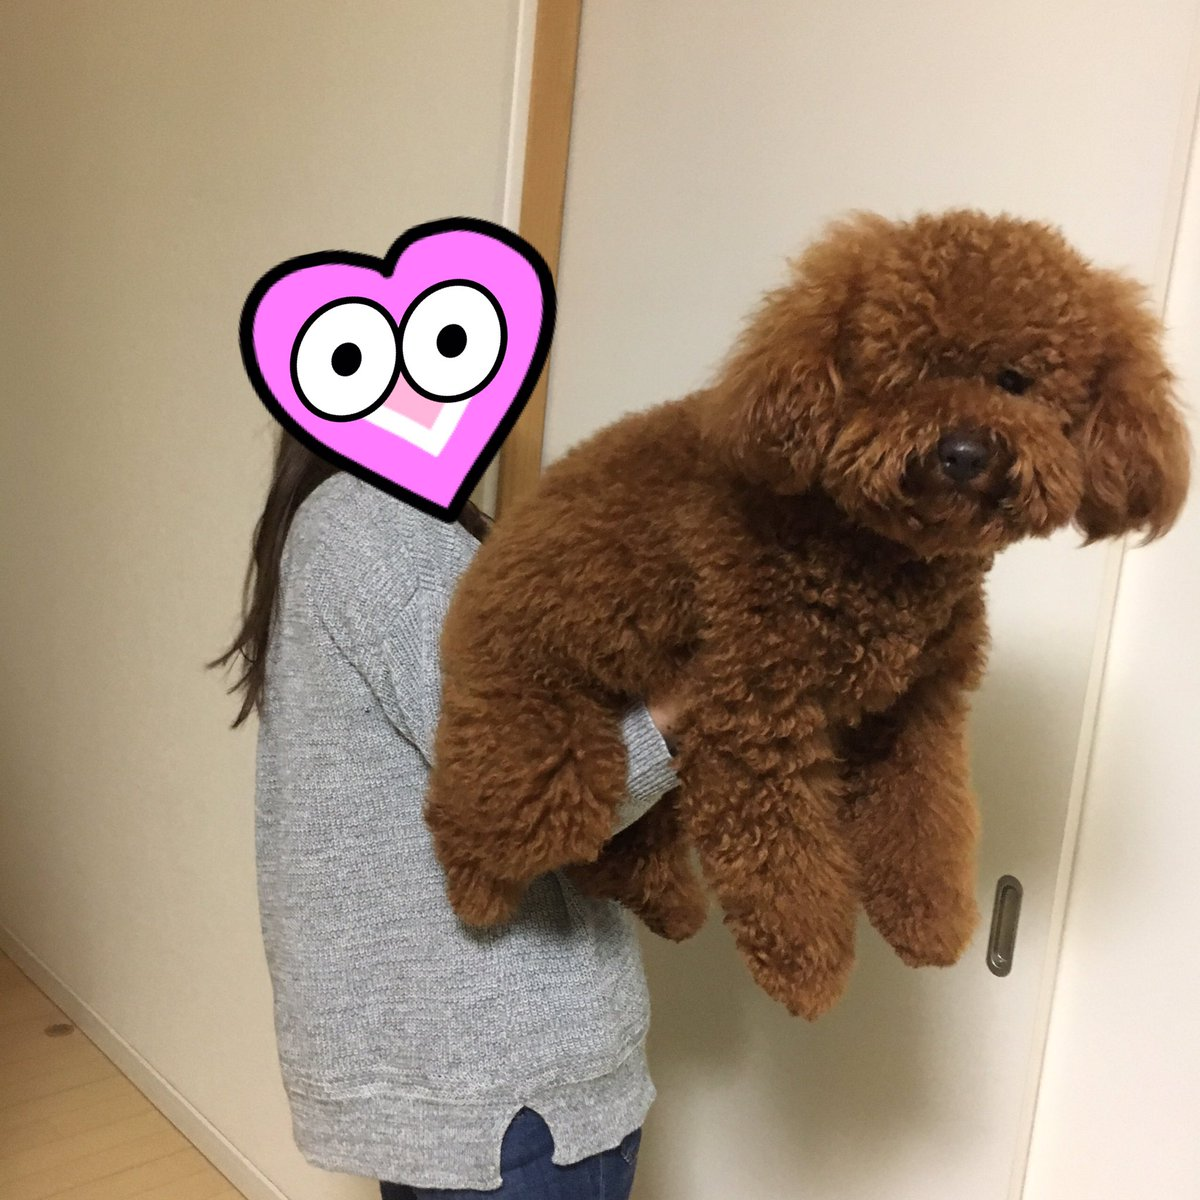 hand-ride-poodle-2